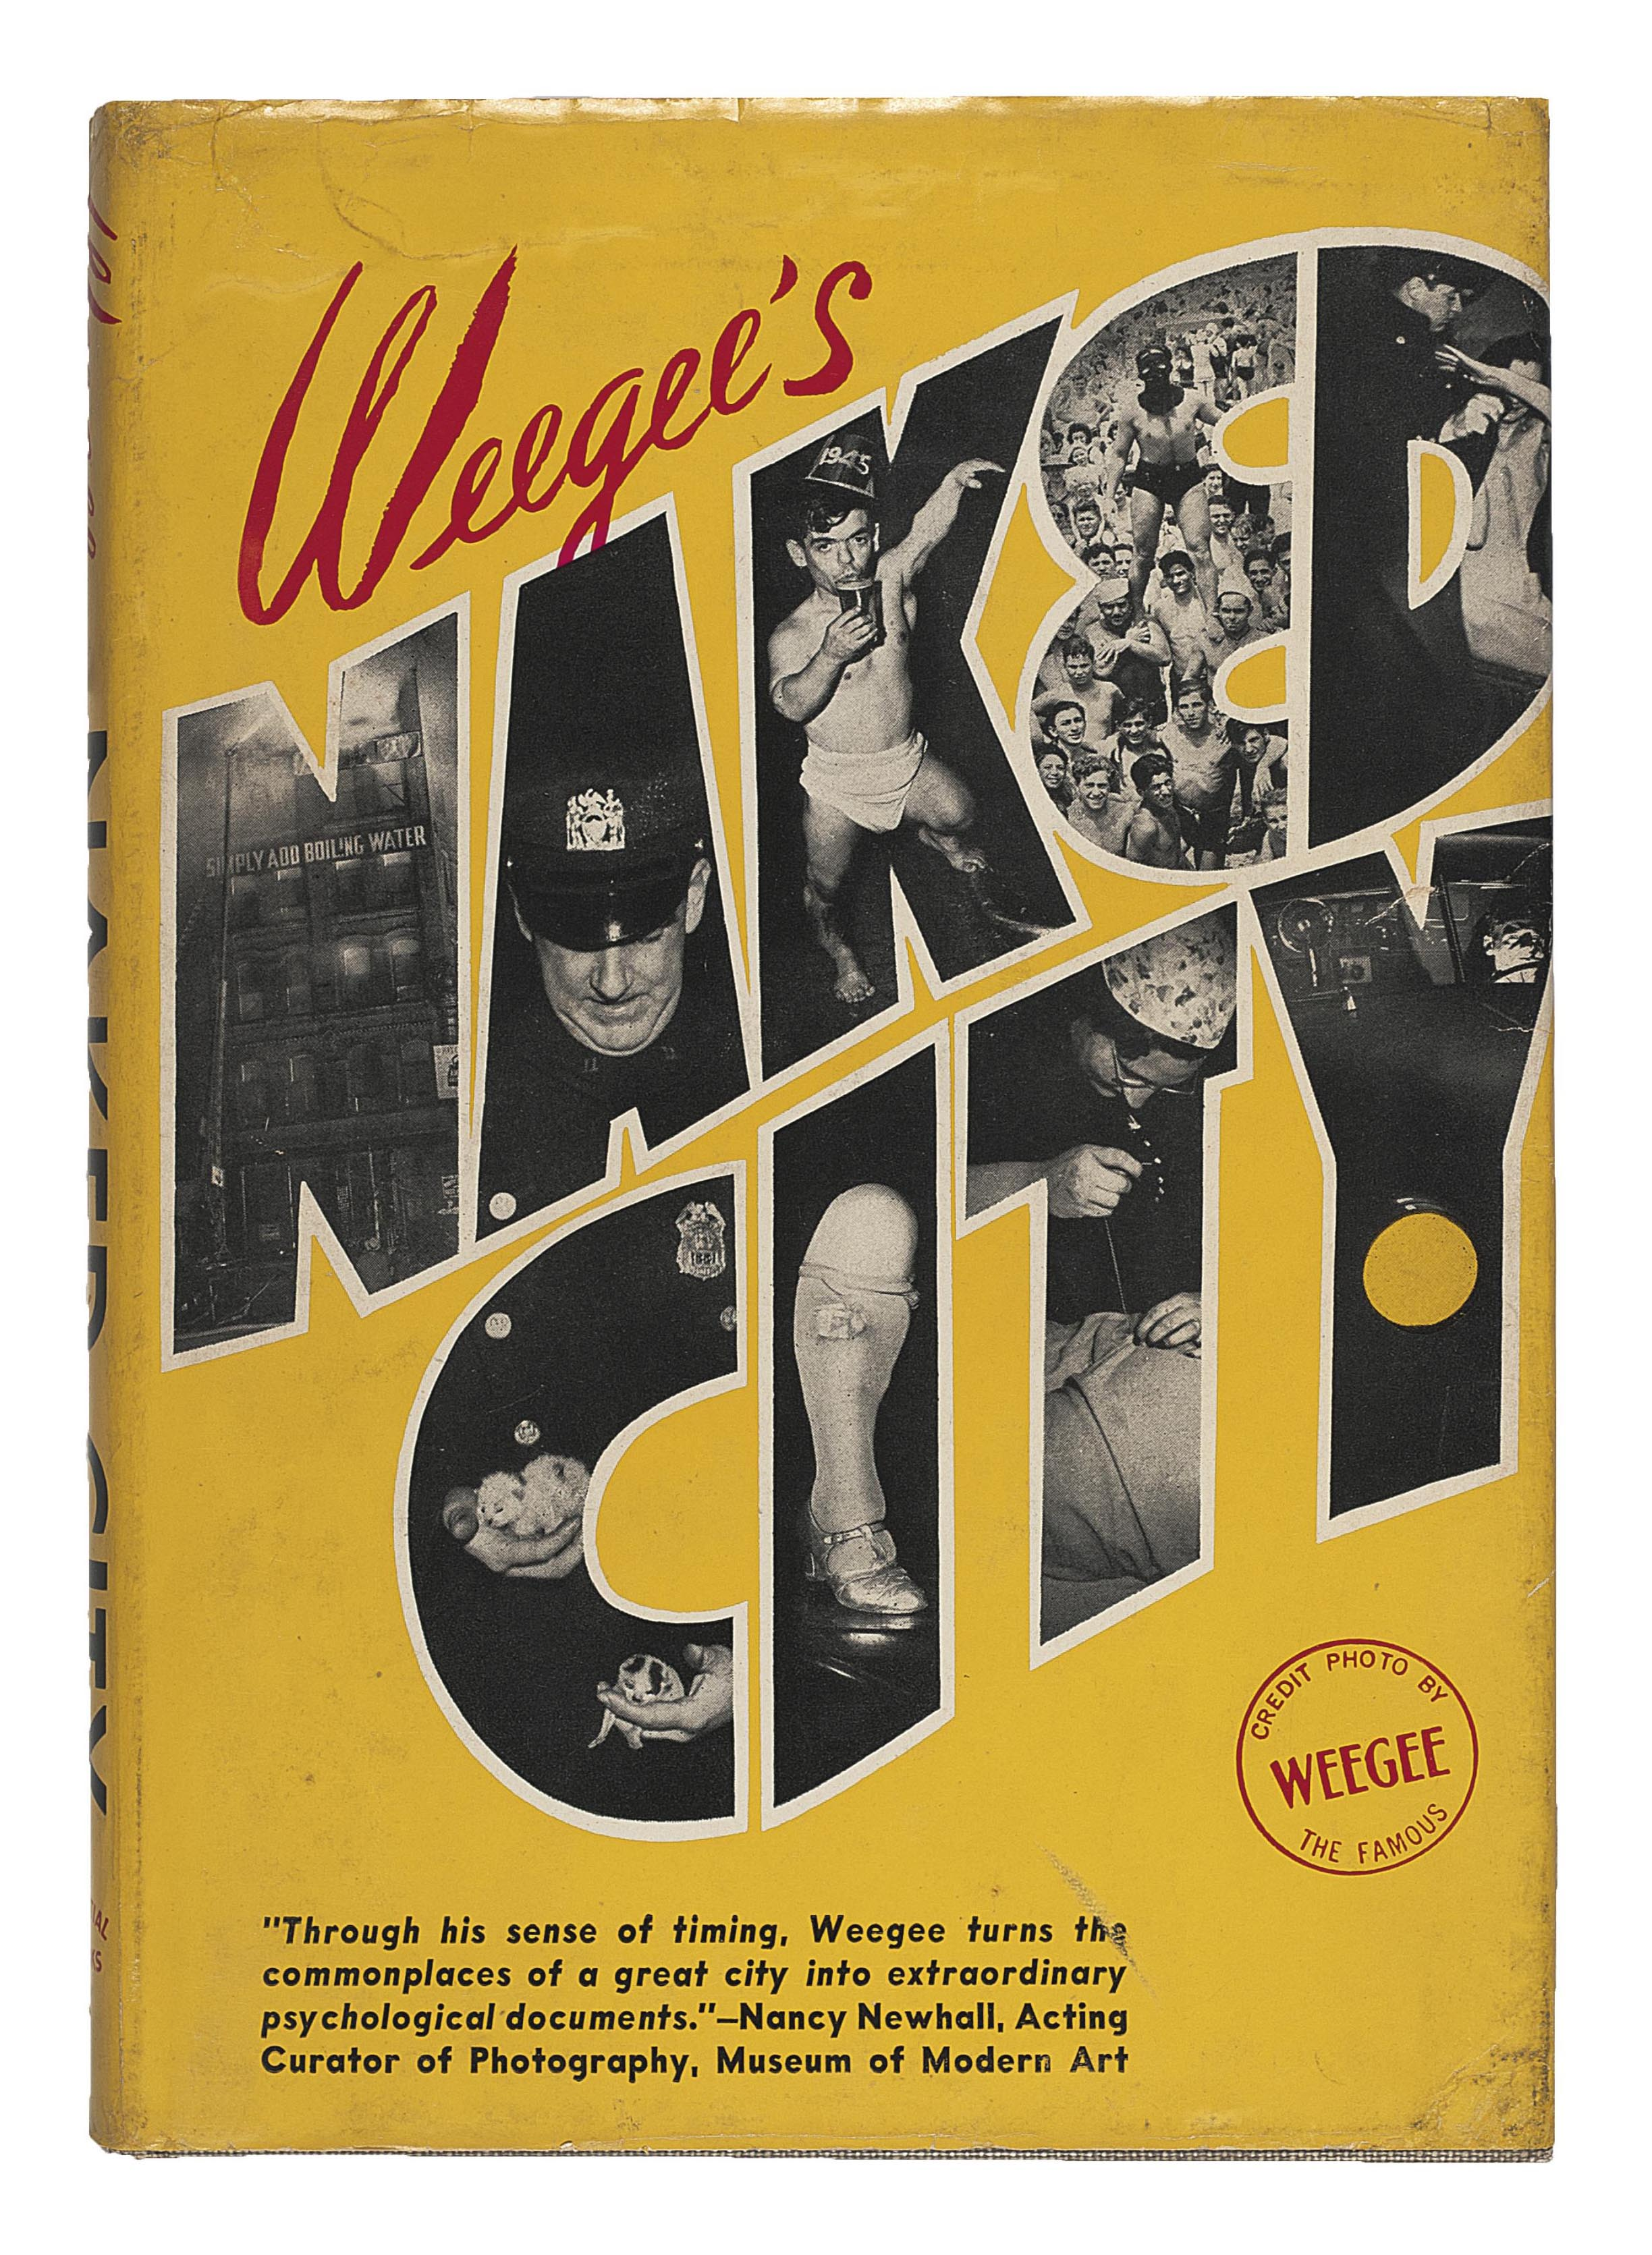 WEEGEE. Naked City. New York: Essential Books, 1945. 8° (234 x 164 mm). 239 black and white photographs. Original tan cloth, spine and front cover lettered in blue, original photo-illustrated dust-jacket printed in yellow, red and black (a few small chips and tears expertly repaired).